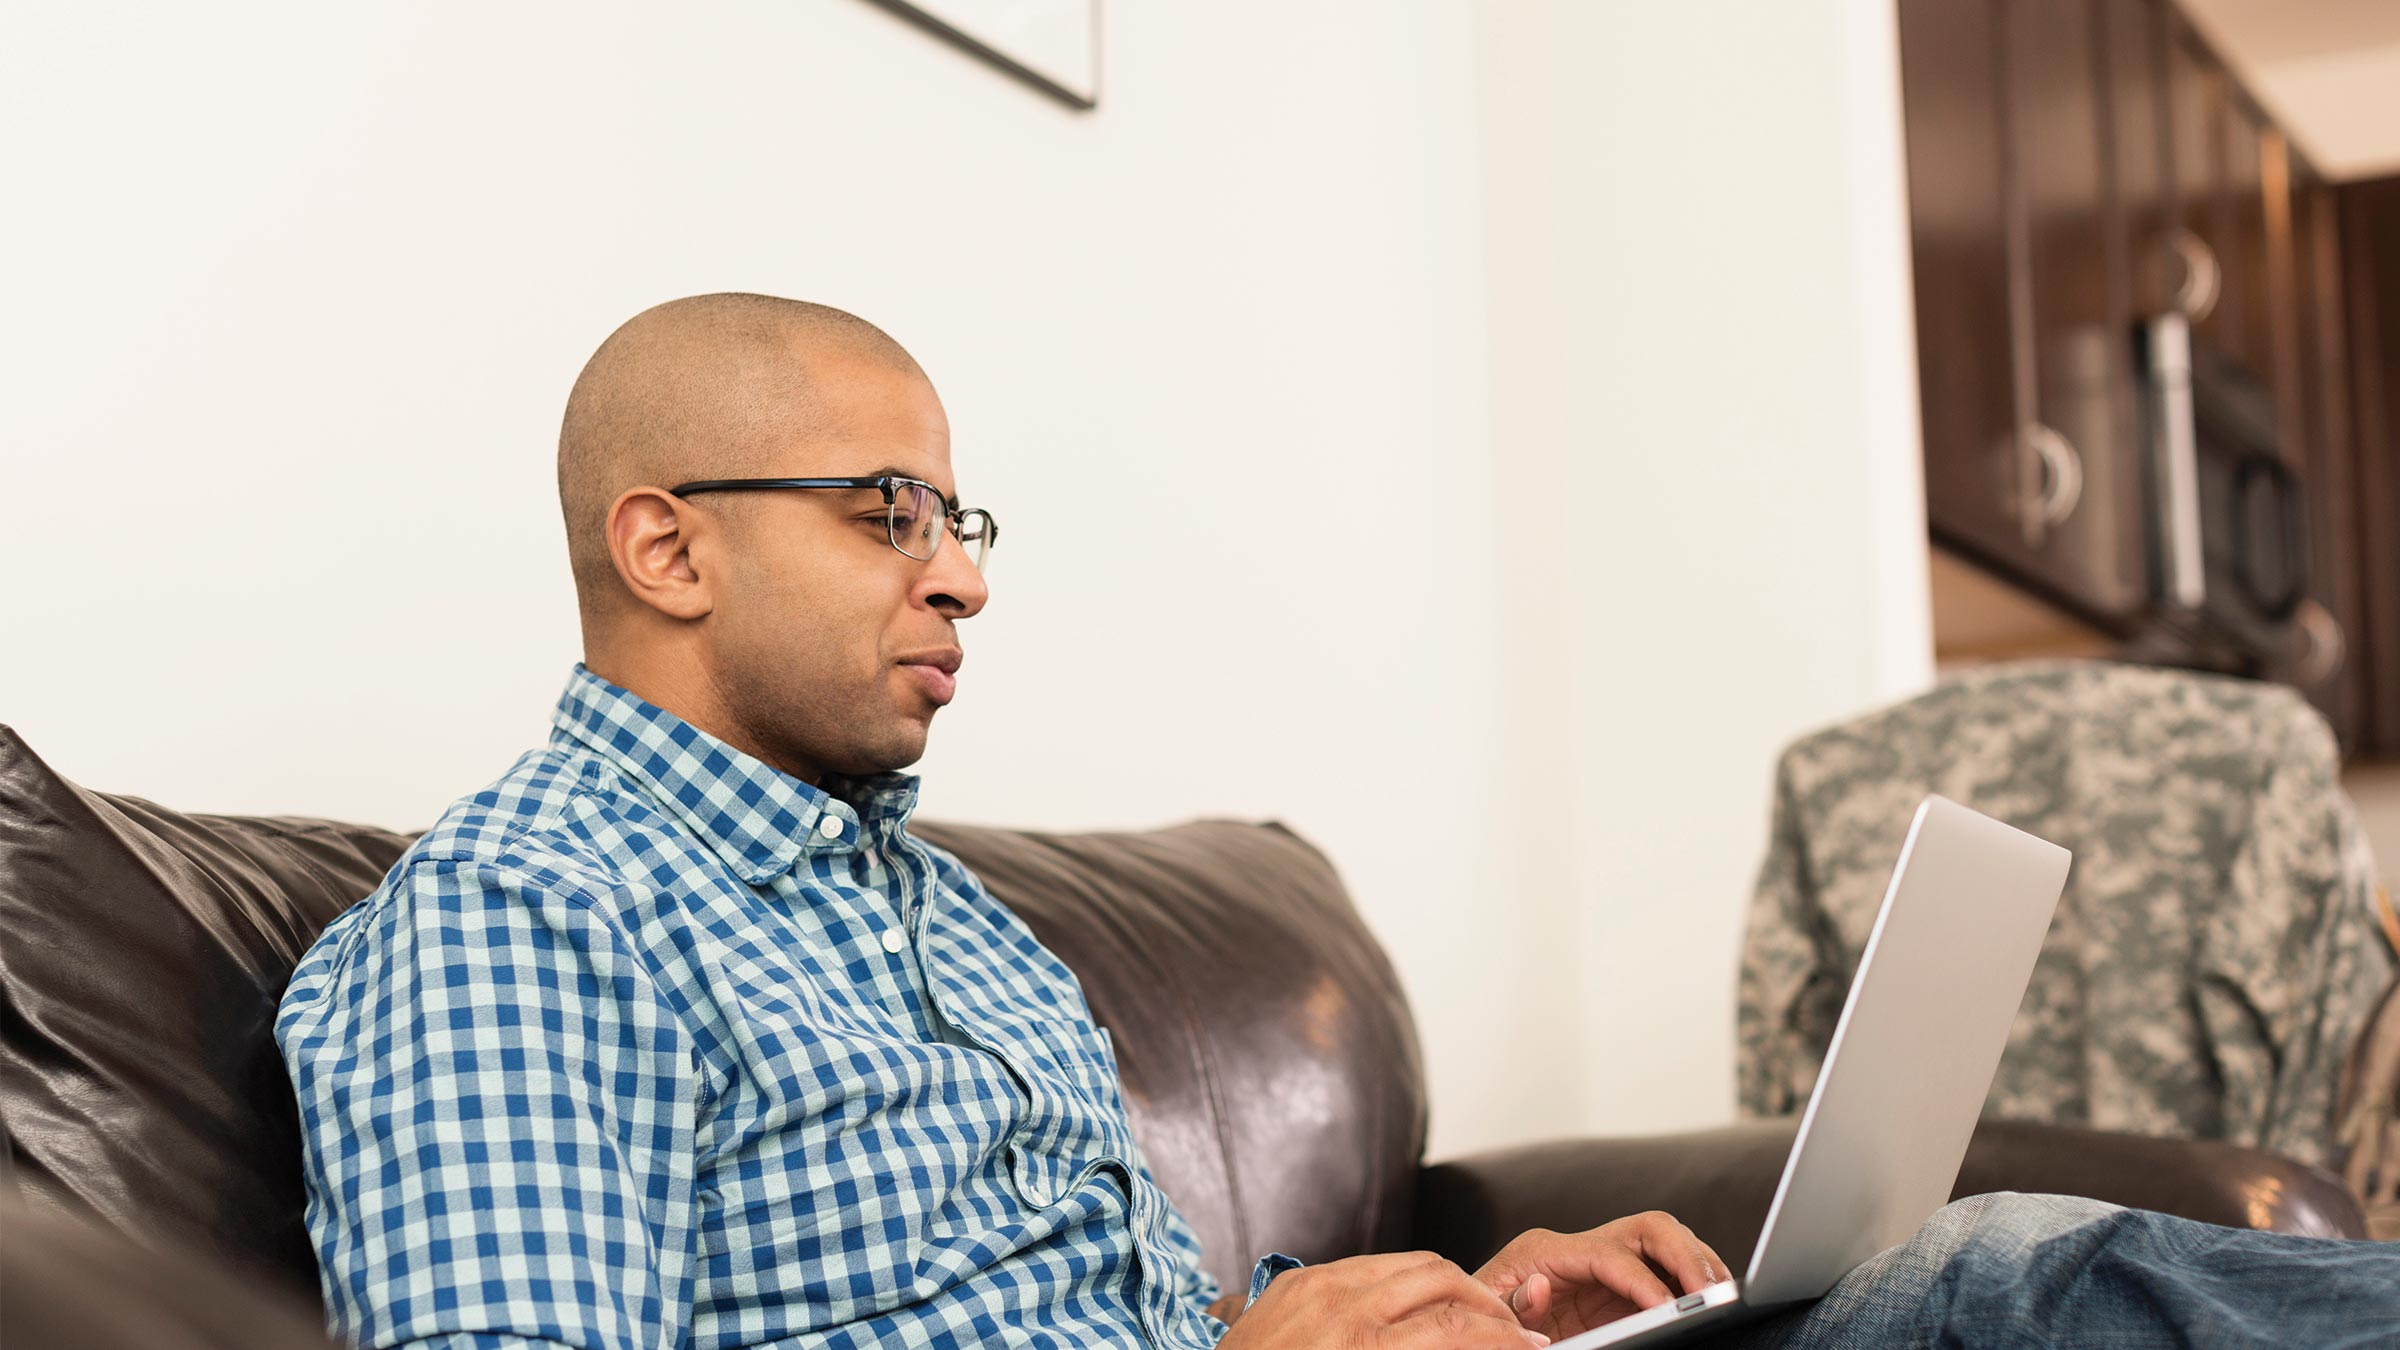 Man at home on his laptop